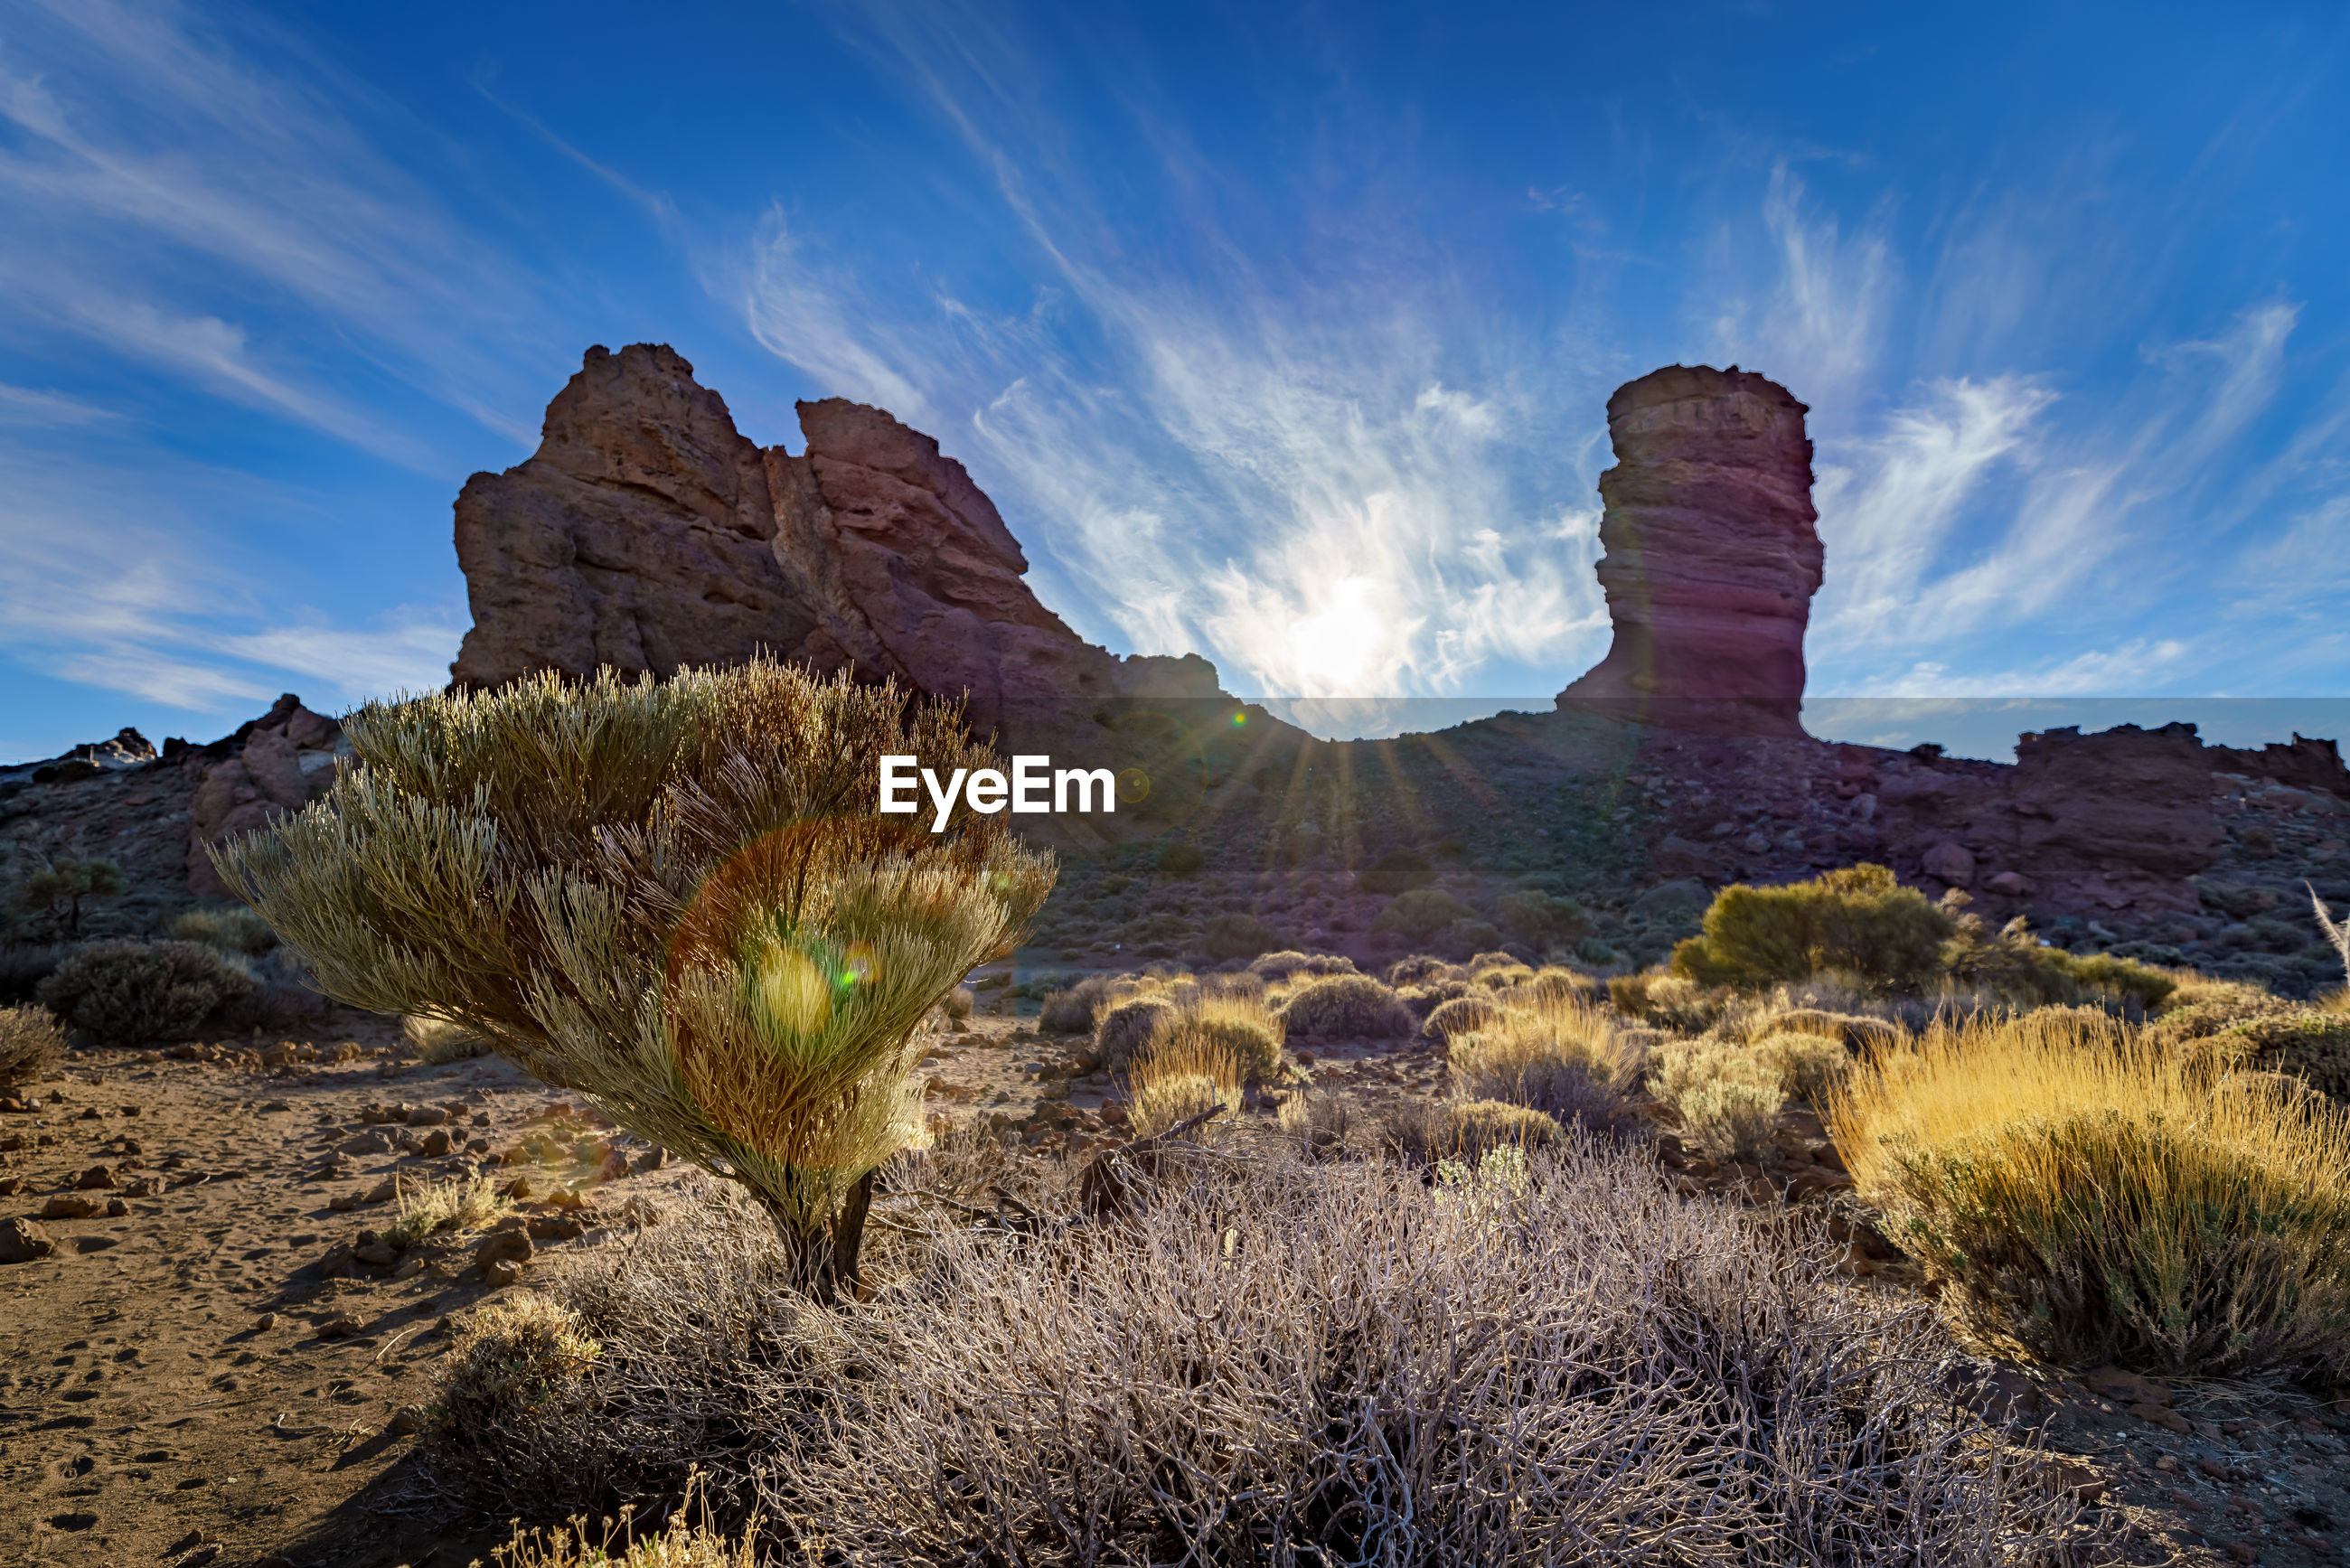 SCENIC VIEW OF ROCKS AGAINST SKY DURING SUNNY DAY